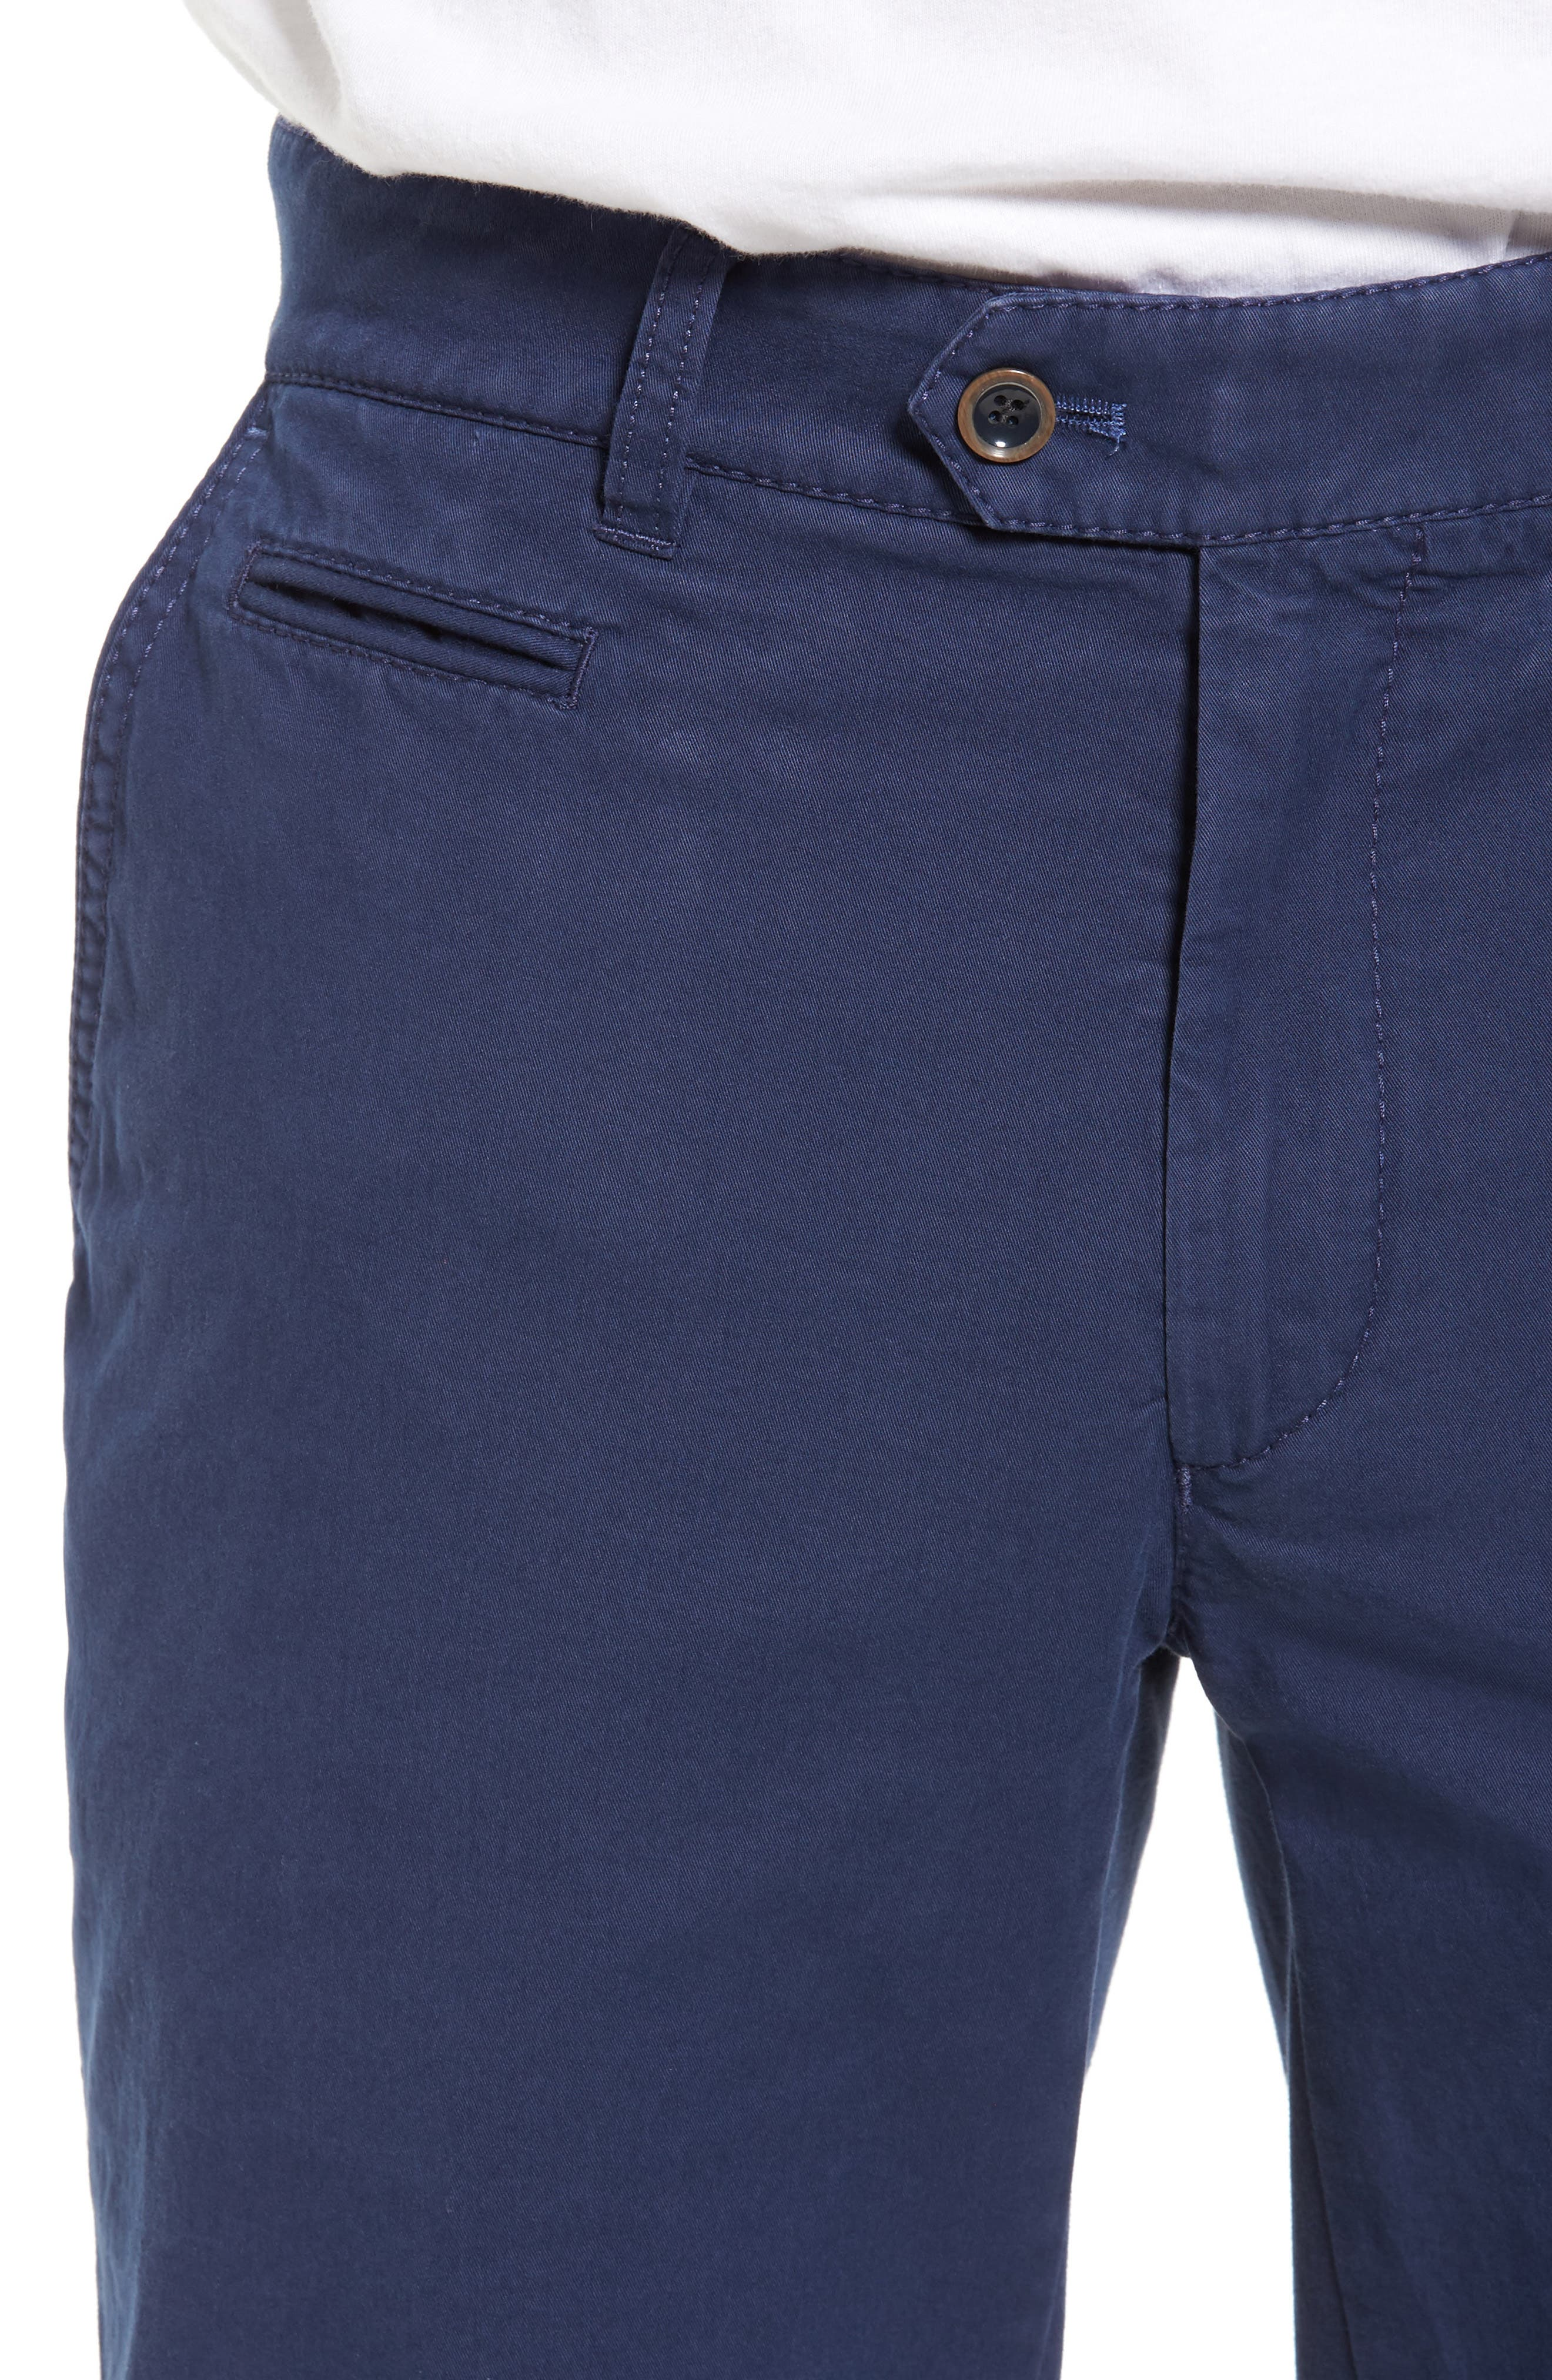 Everest Flat Front Chinos,                             Alternate thumbnail 8, color,